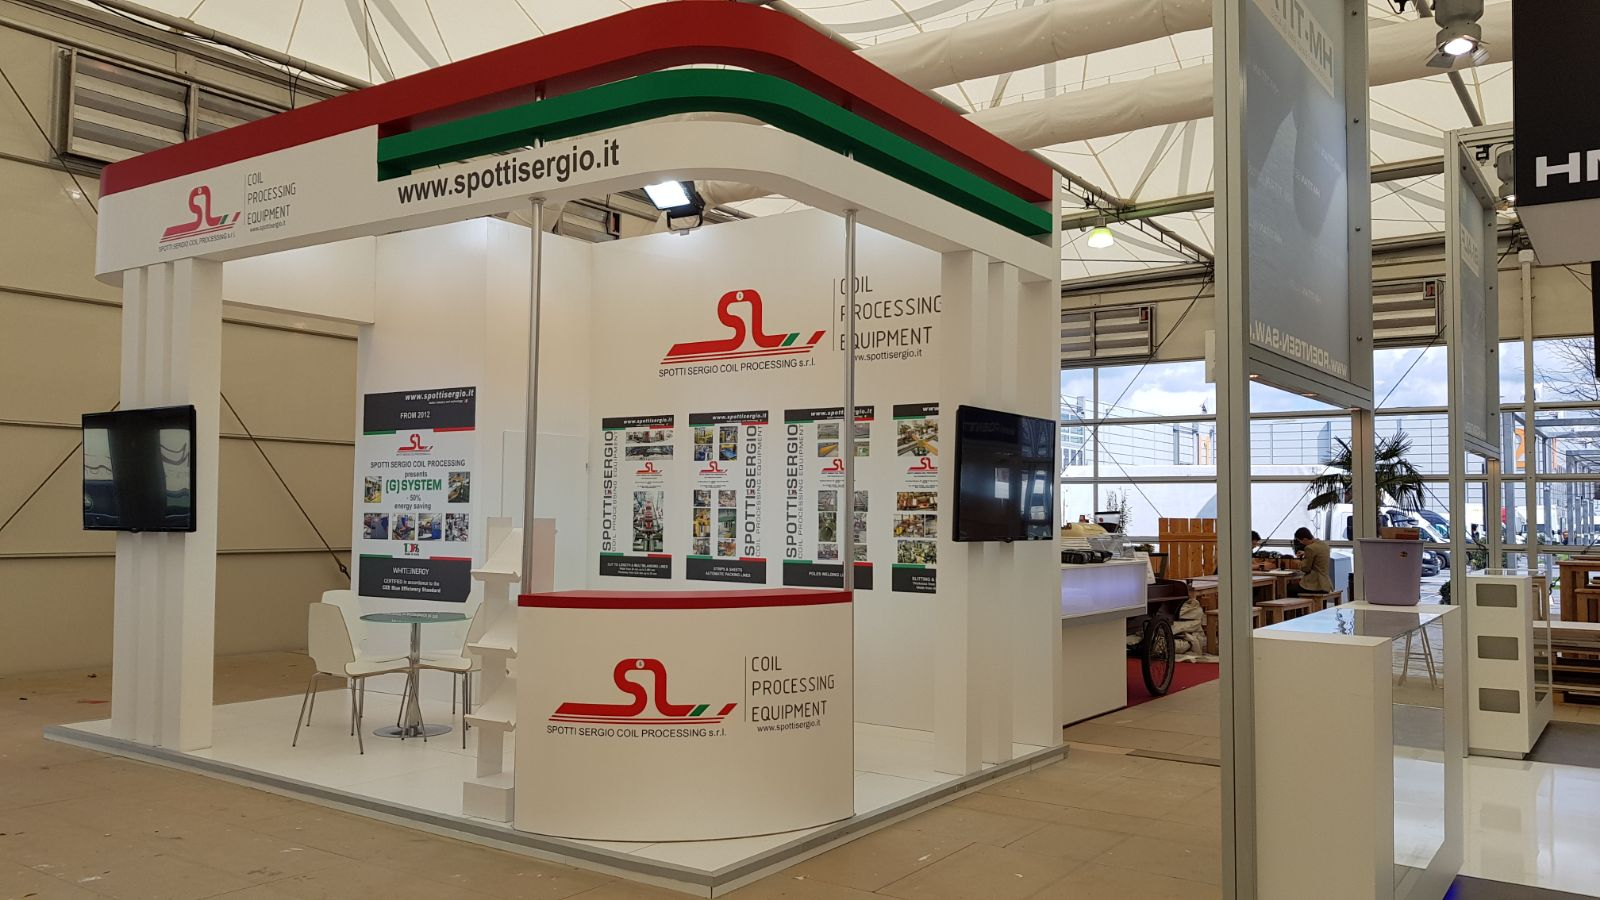 <a href='application-detail/143'>CLICK HERE - Wire Tube Dusseldorf Germany 2018 Spotti-Italy Stand   SHOW MORE<a/>